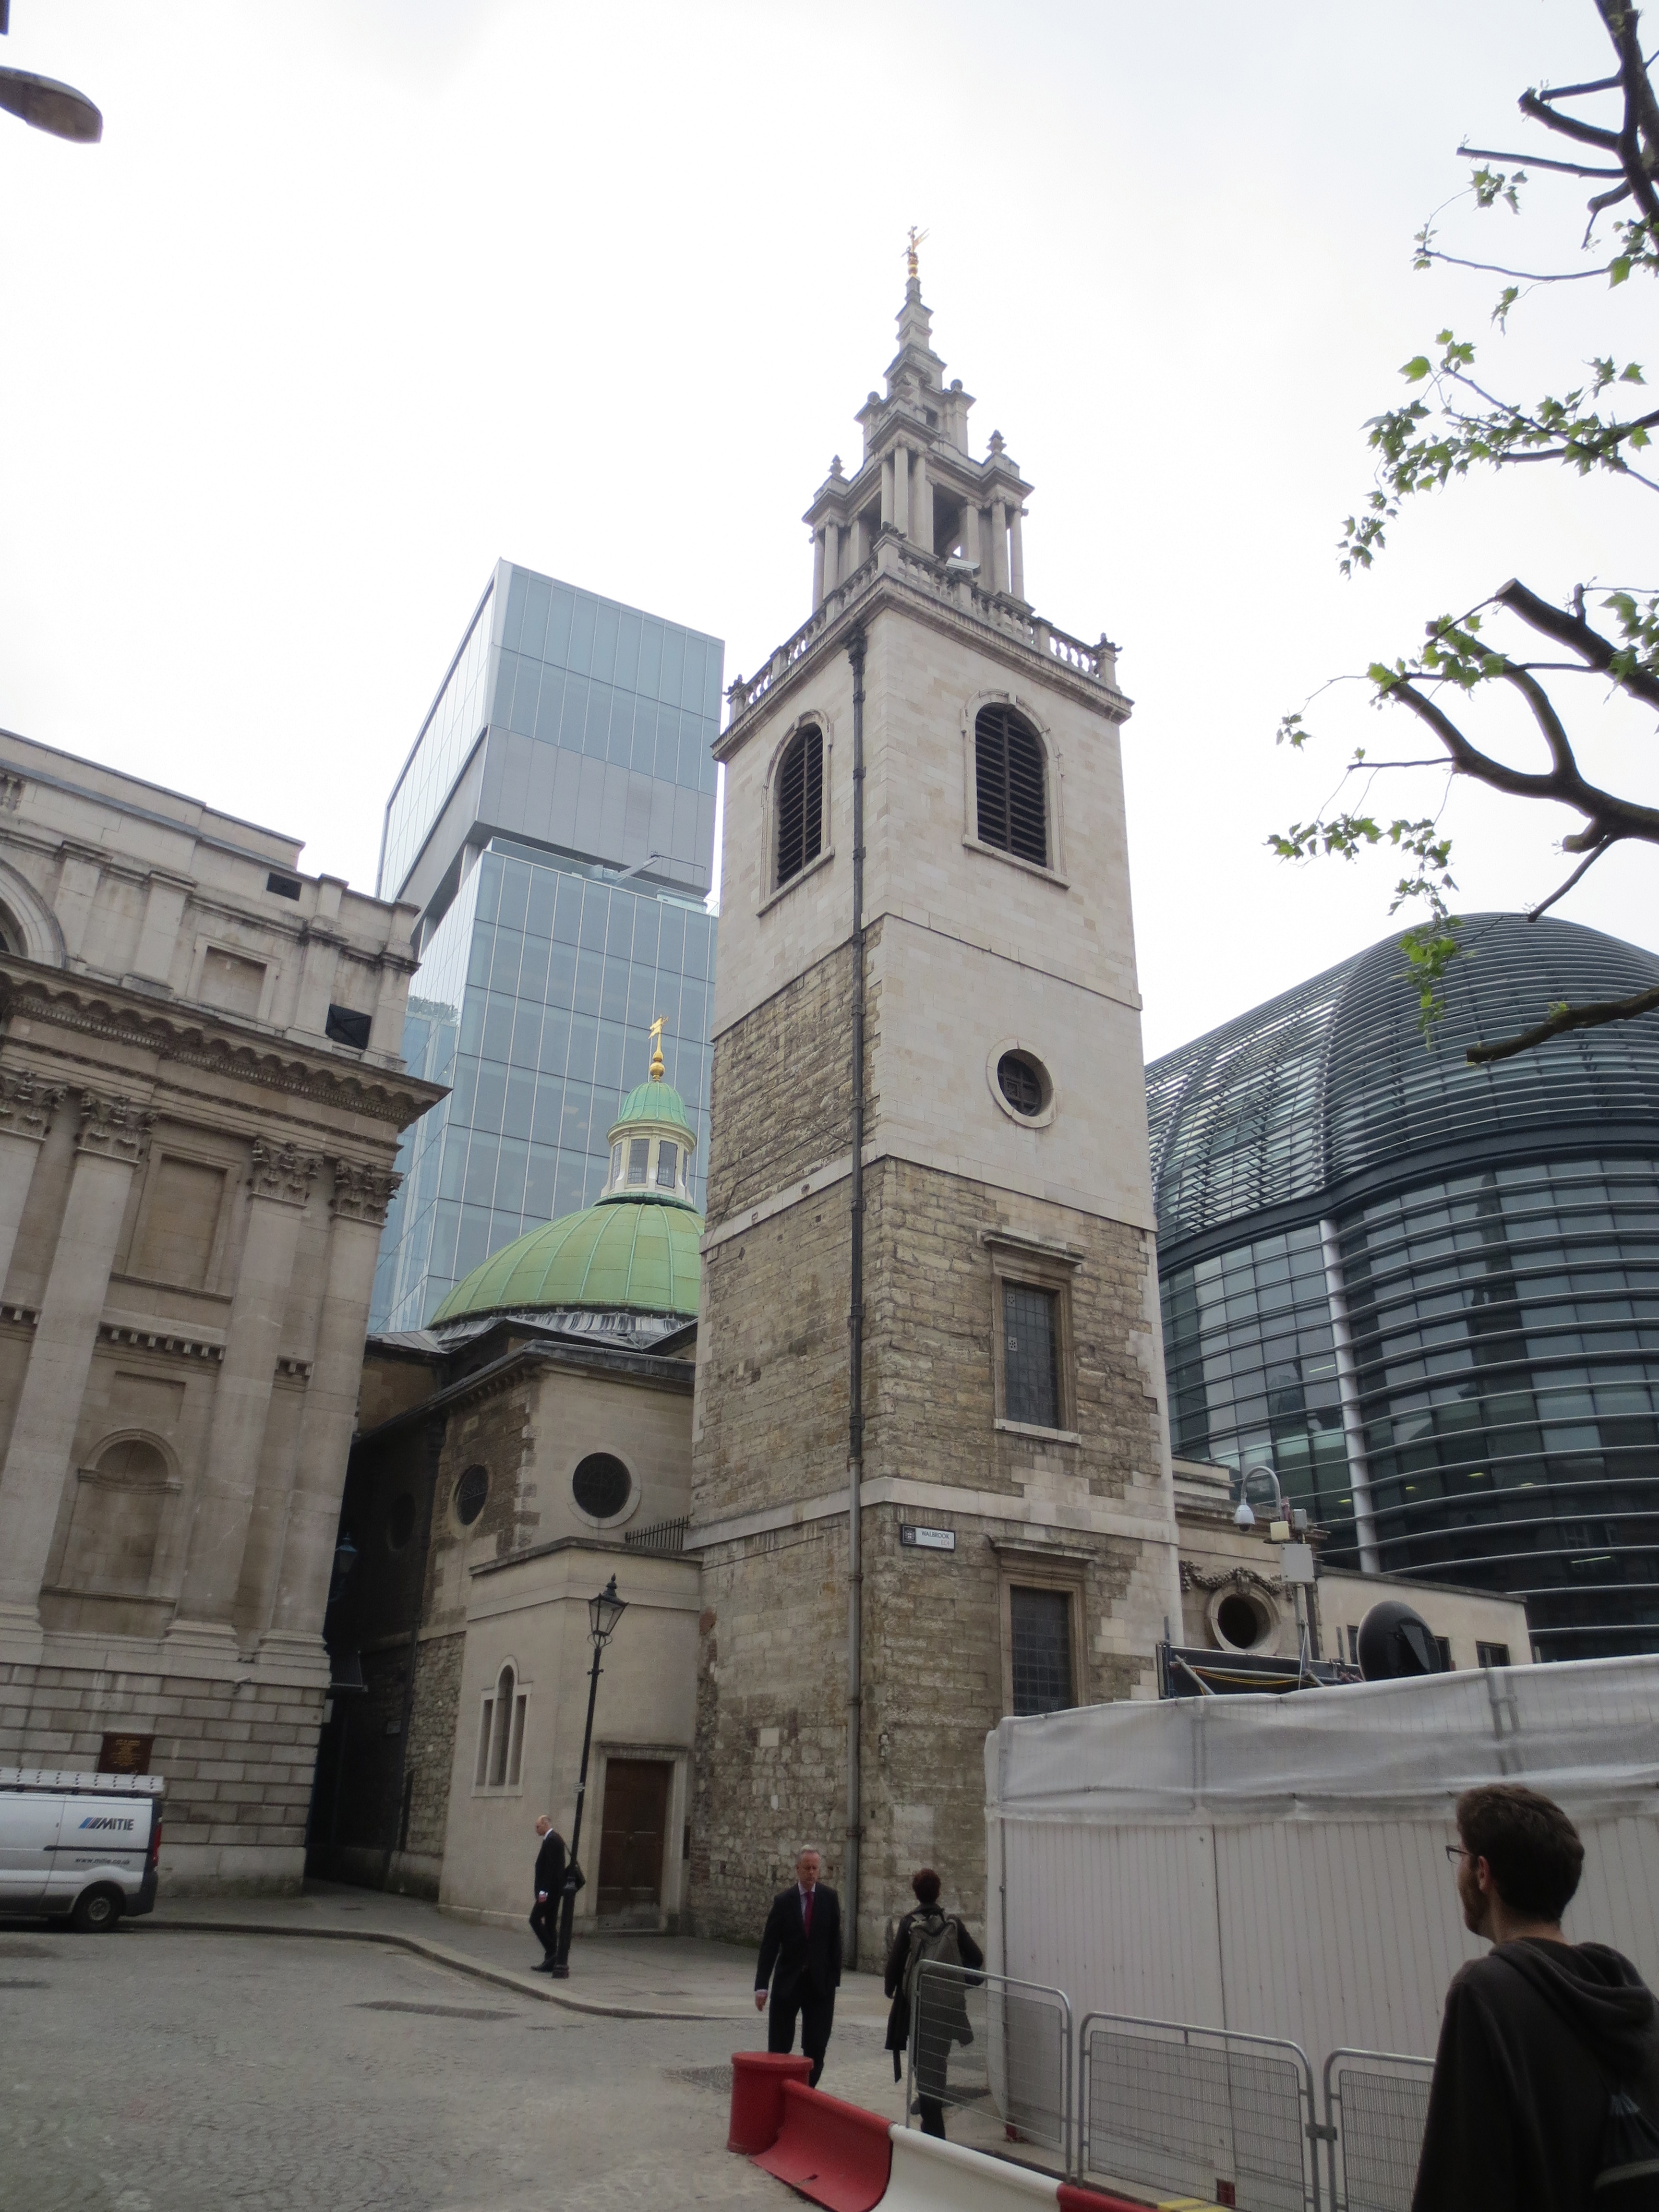 We Also Focused On St. Stephen Walbrook, Whose History, Like That Of Every  Other Church, Can Be Divided Into 4 Parts: Site Of An Early Church, ...